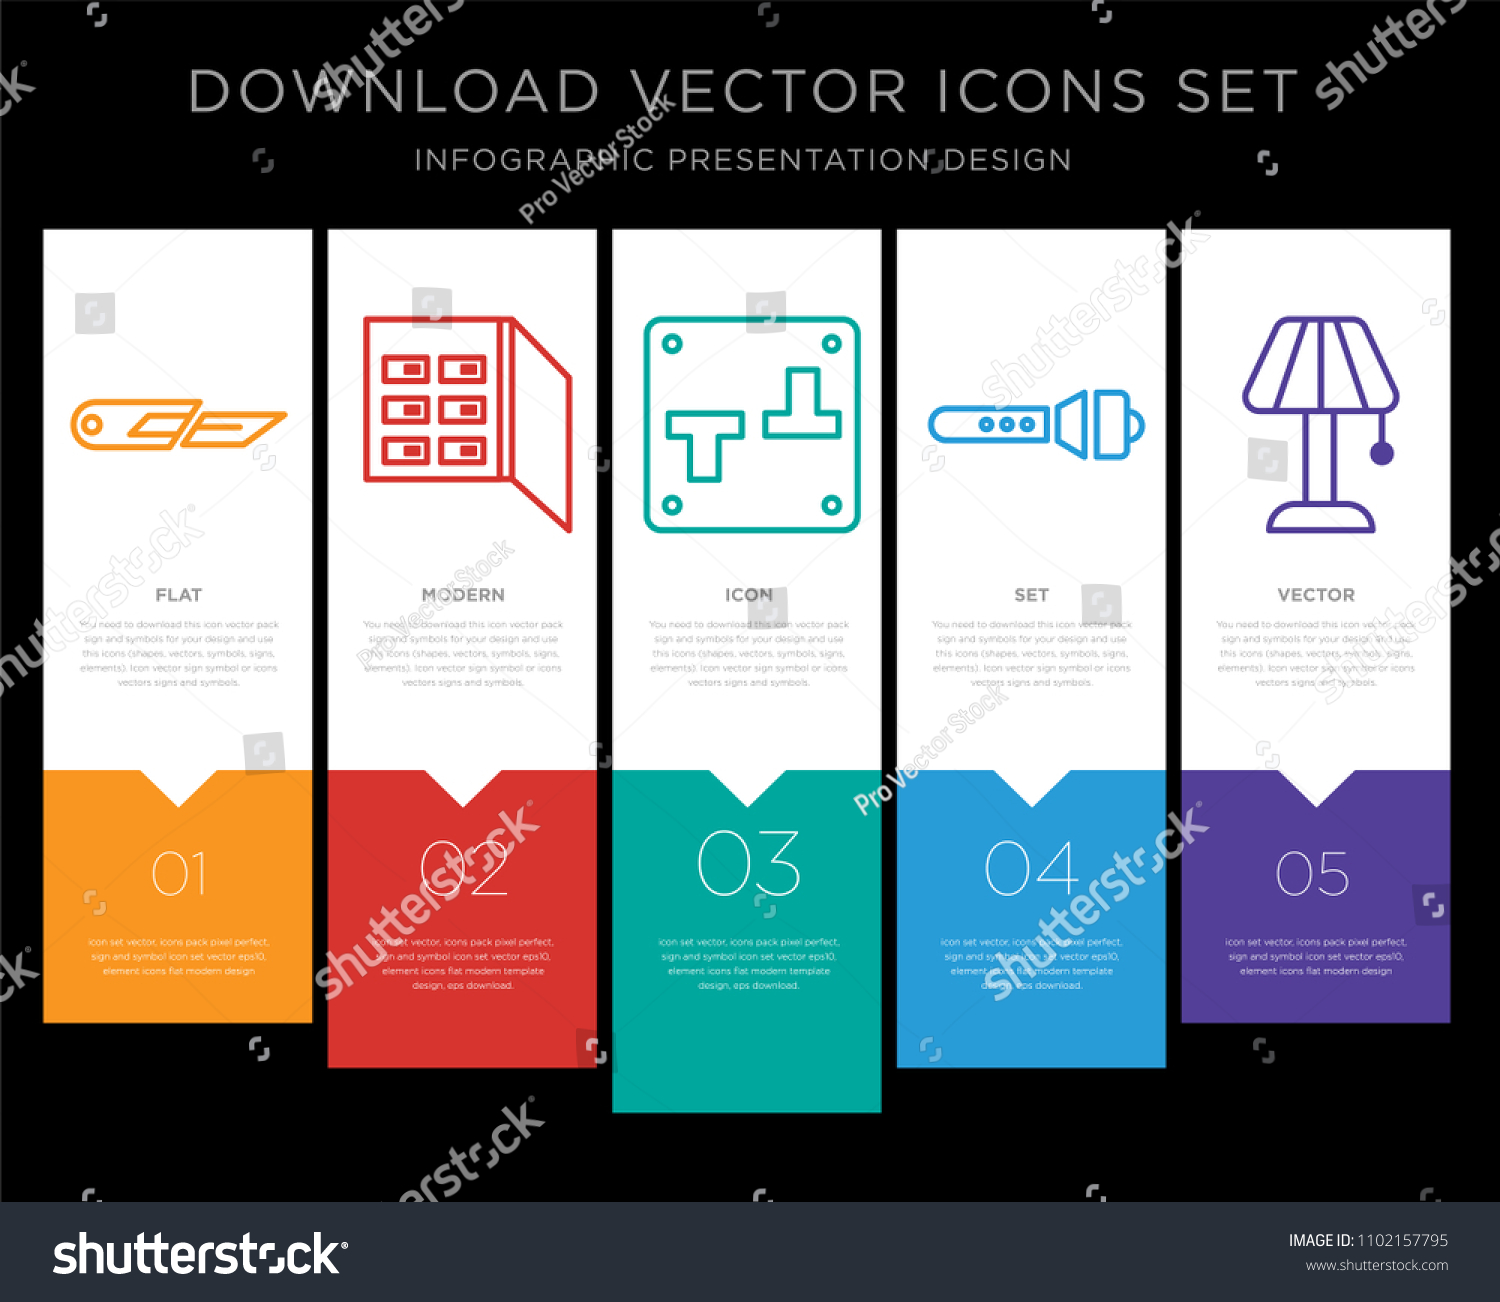 5 Vector Icons Such Cutter Fuse Stock Vector 1102157795 - Shutterstock